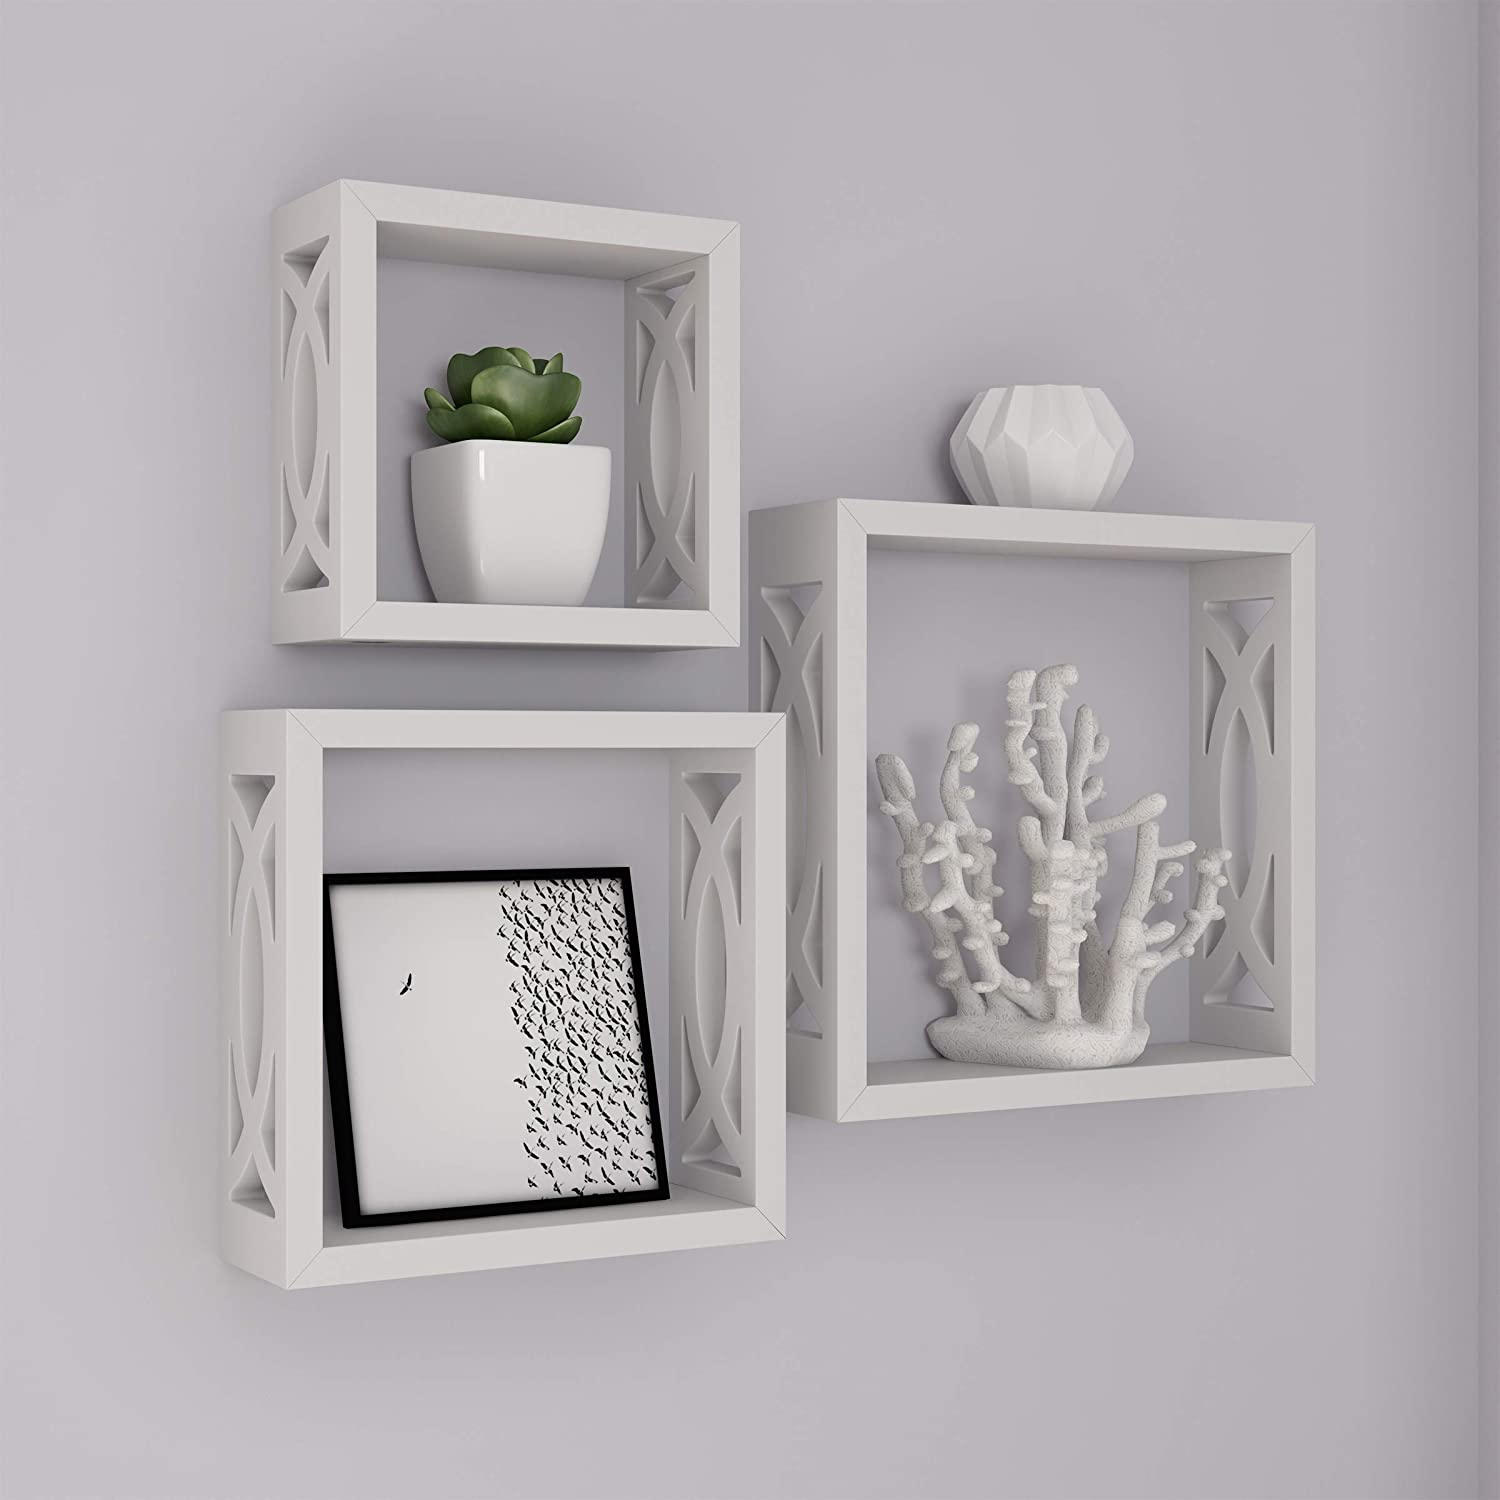 Lavish Home Floating Shelves- Open Cube Wall Shelf Set with Hidden Brackets 3 Sizes to Display Decor, Photos, More-Hardware Included (White)